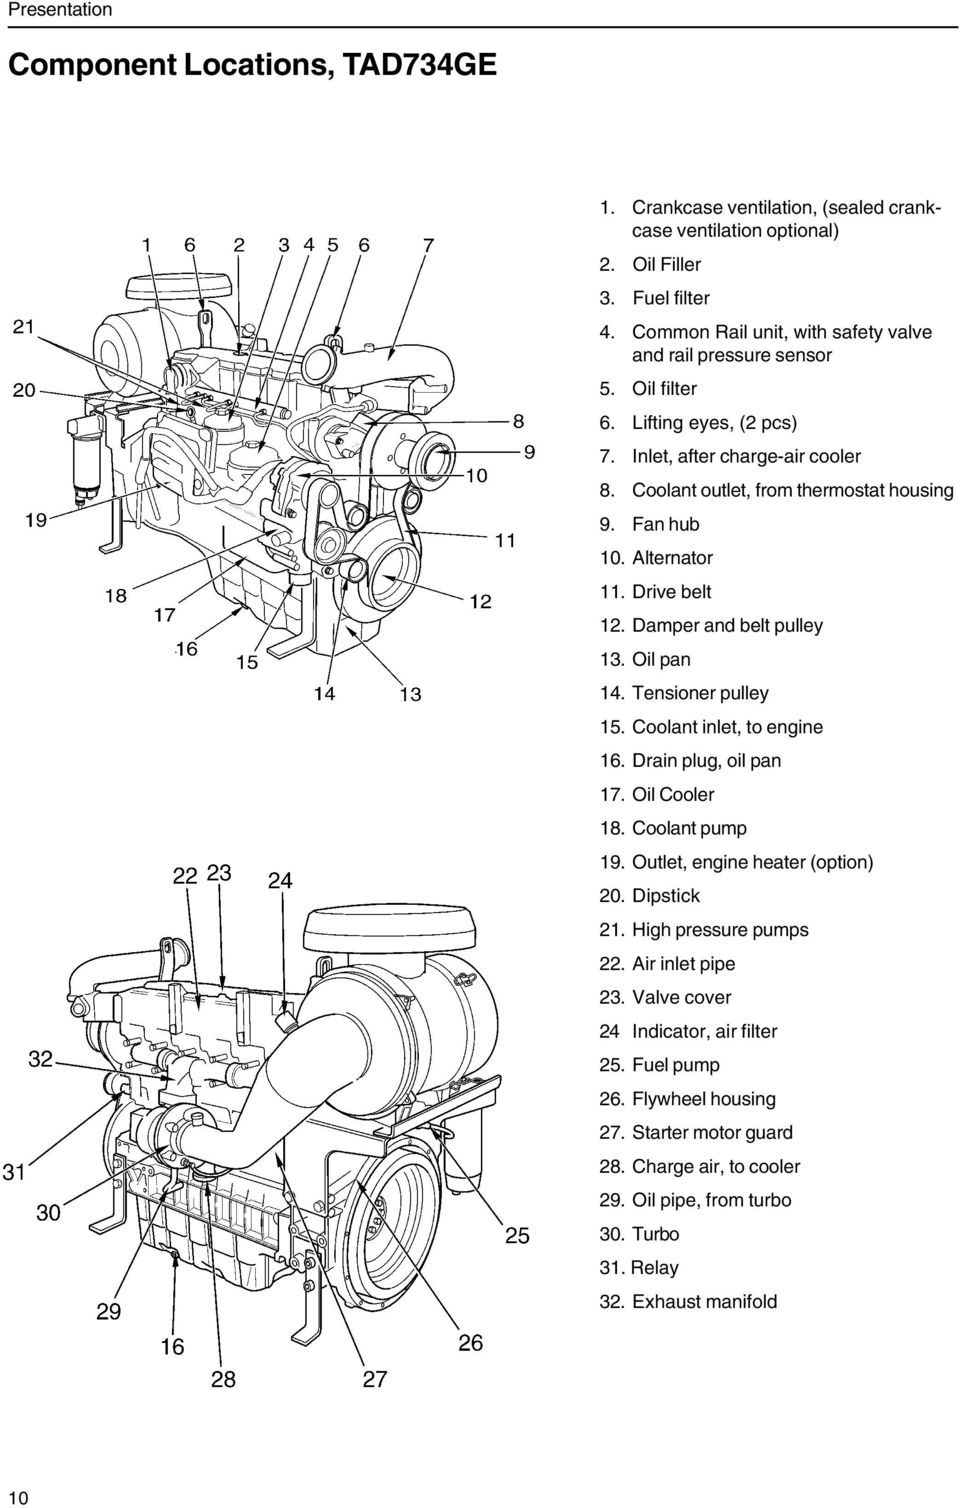 Users Guide And Maintenance Manual Pdf 2004 Volkswagen Jetta Coolant Ing Alternator 11 Drive Belt 12 Damper Pulley 13 Oil Pan 14